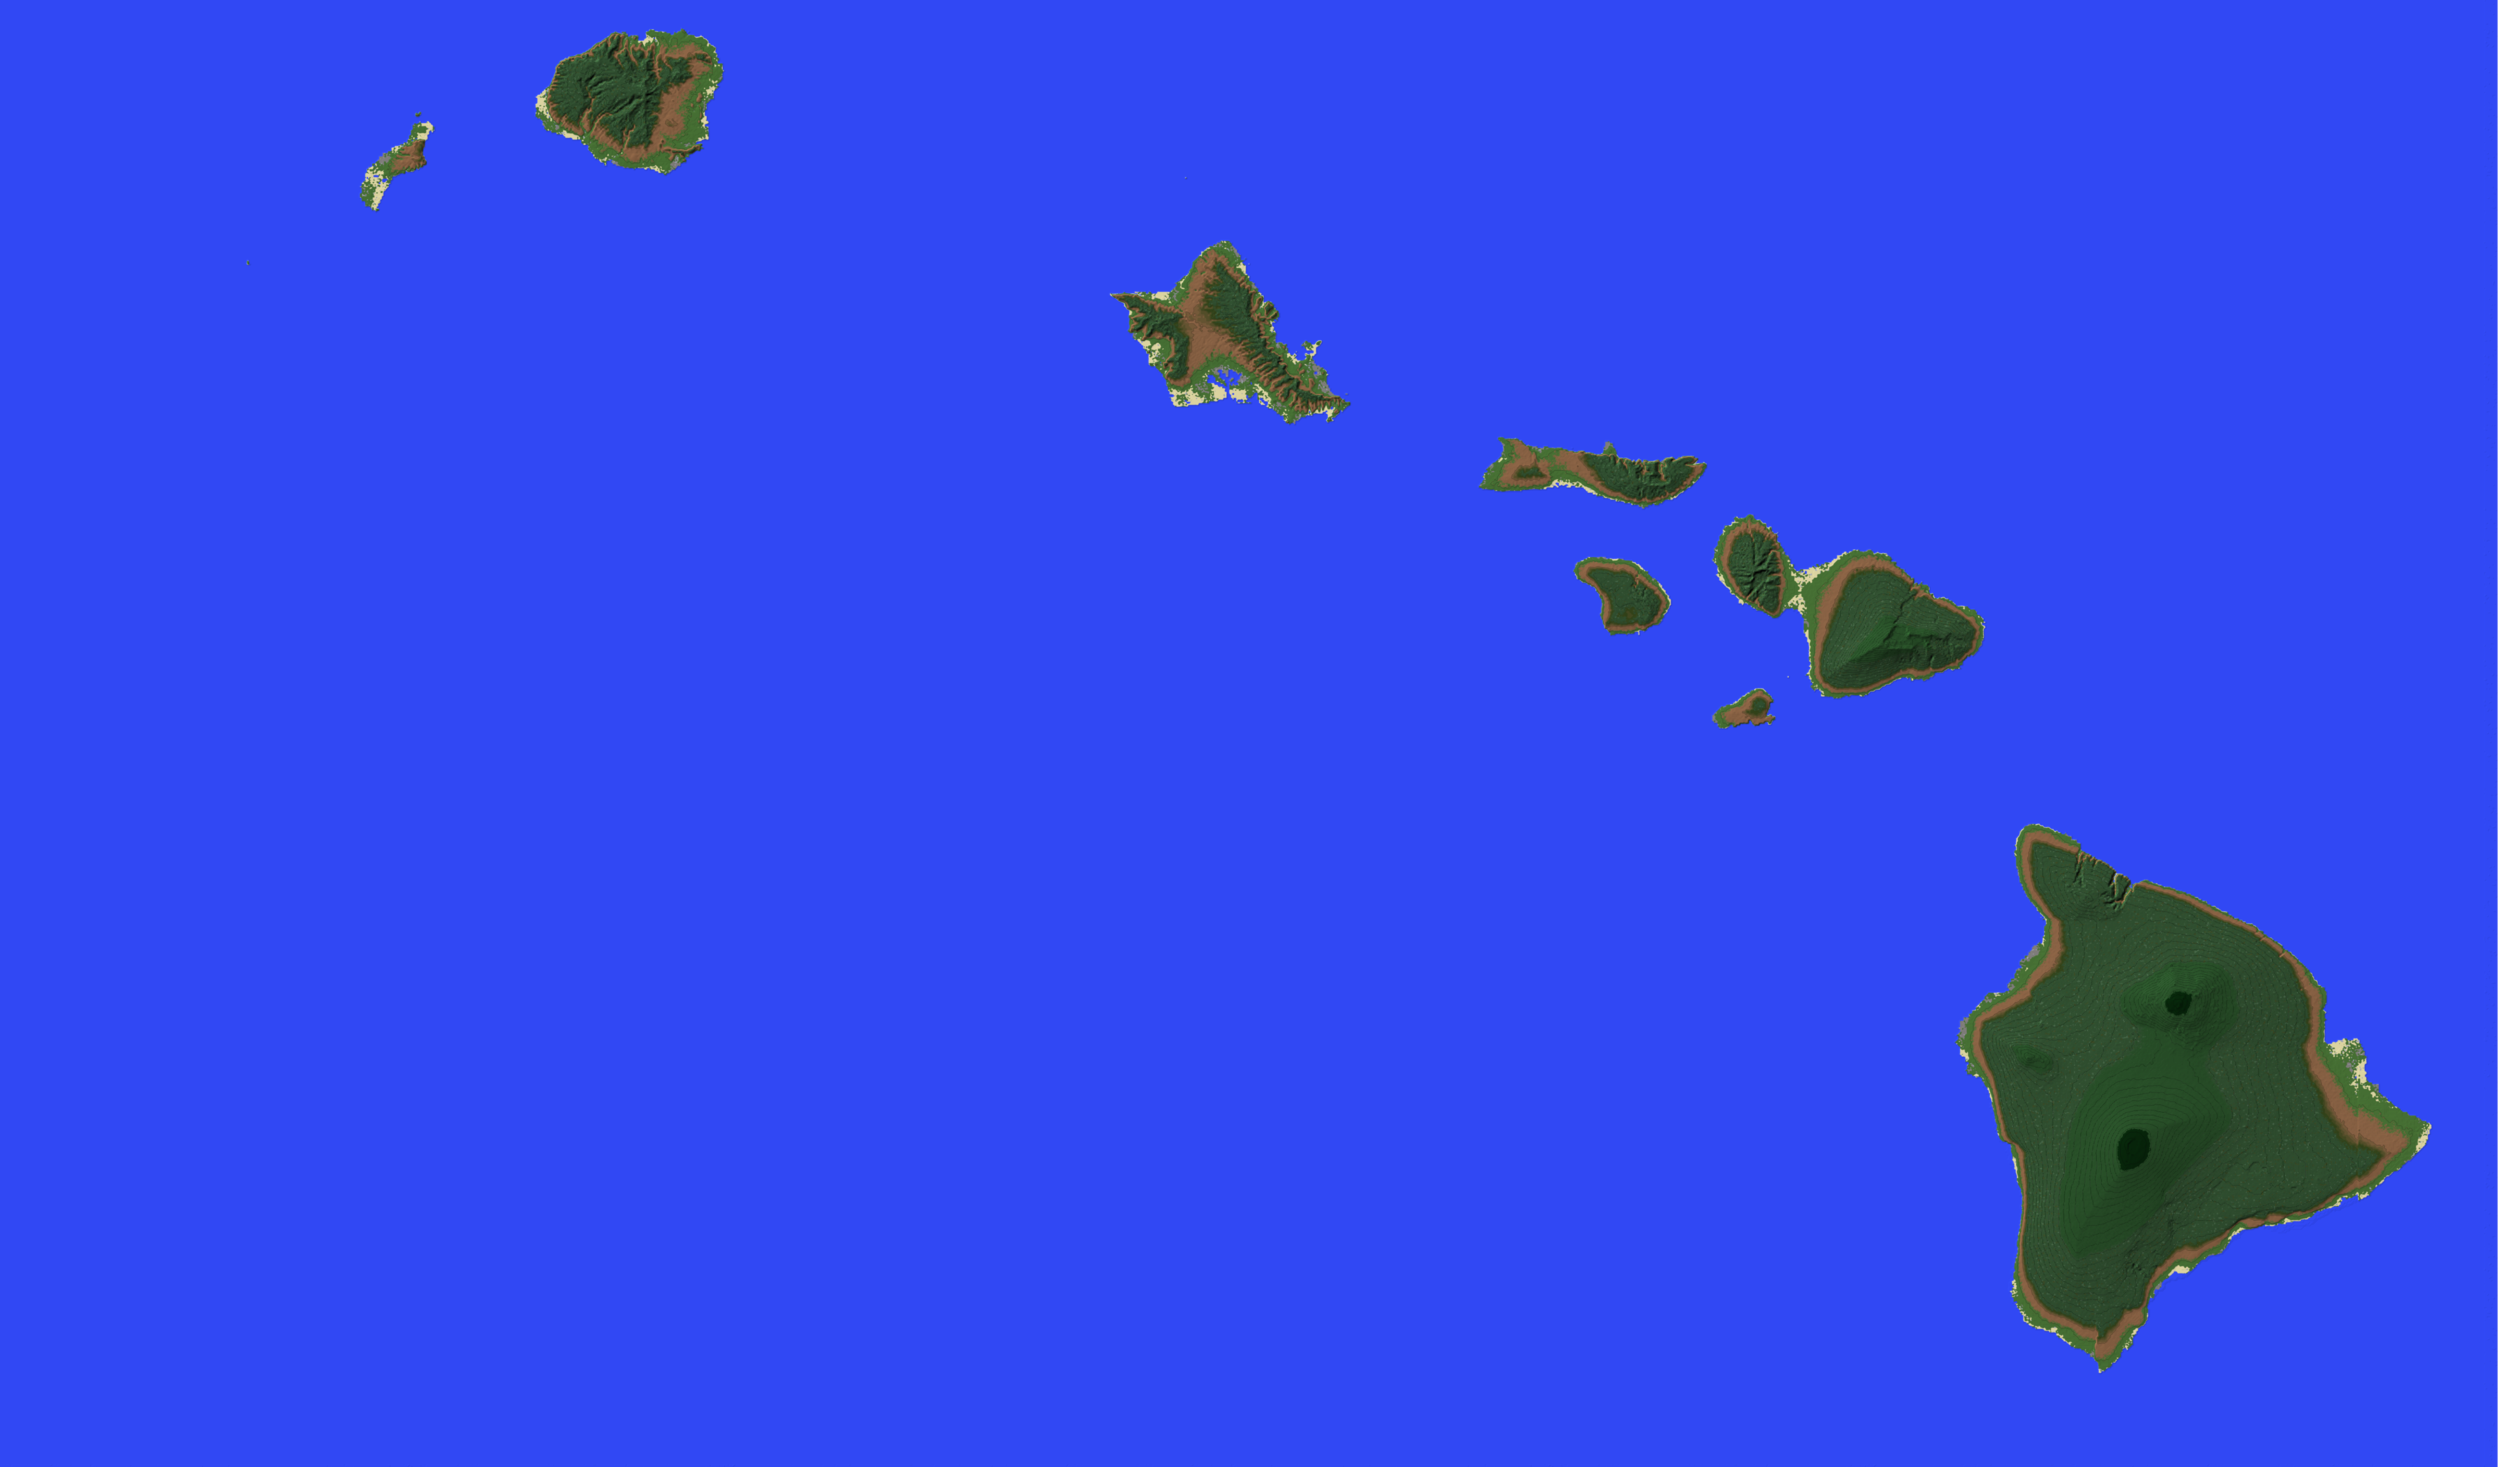 NEW Hawaiian Kingdom map is one of plethora worlds in the AGILE Minecraft Multiversity